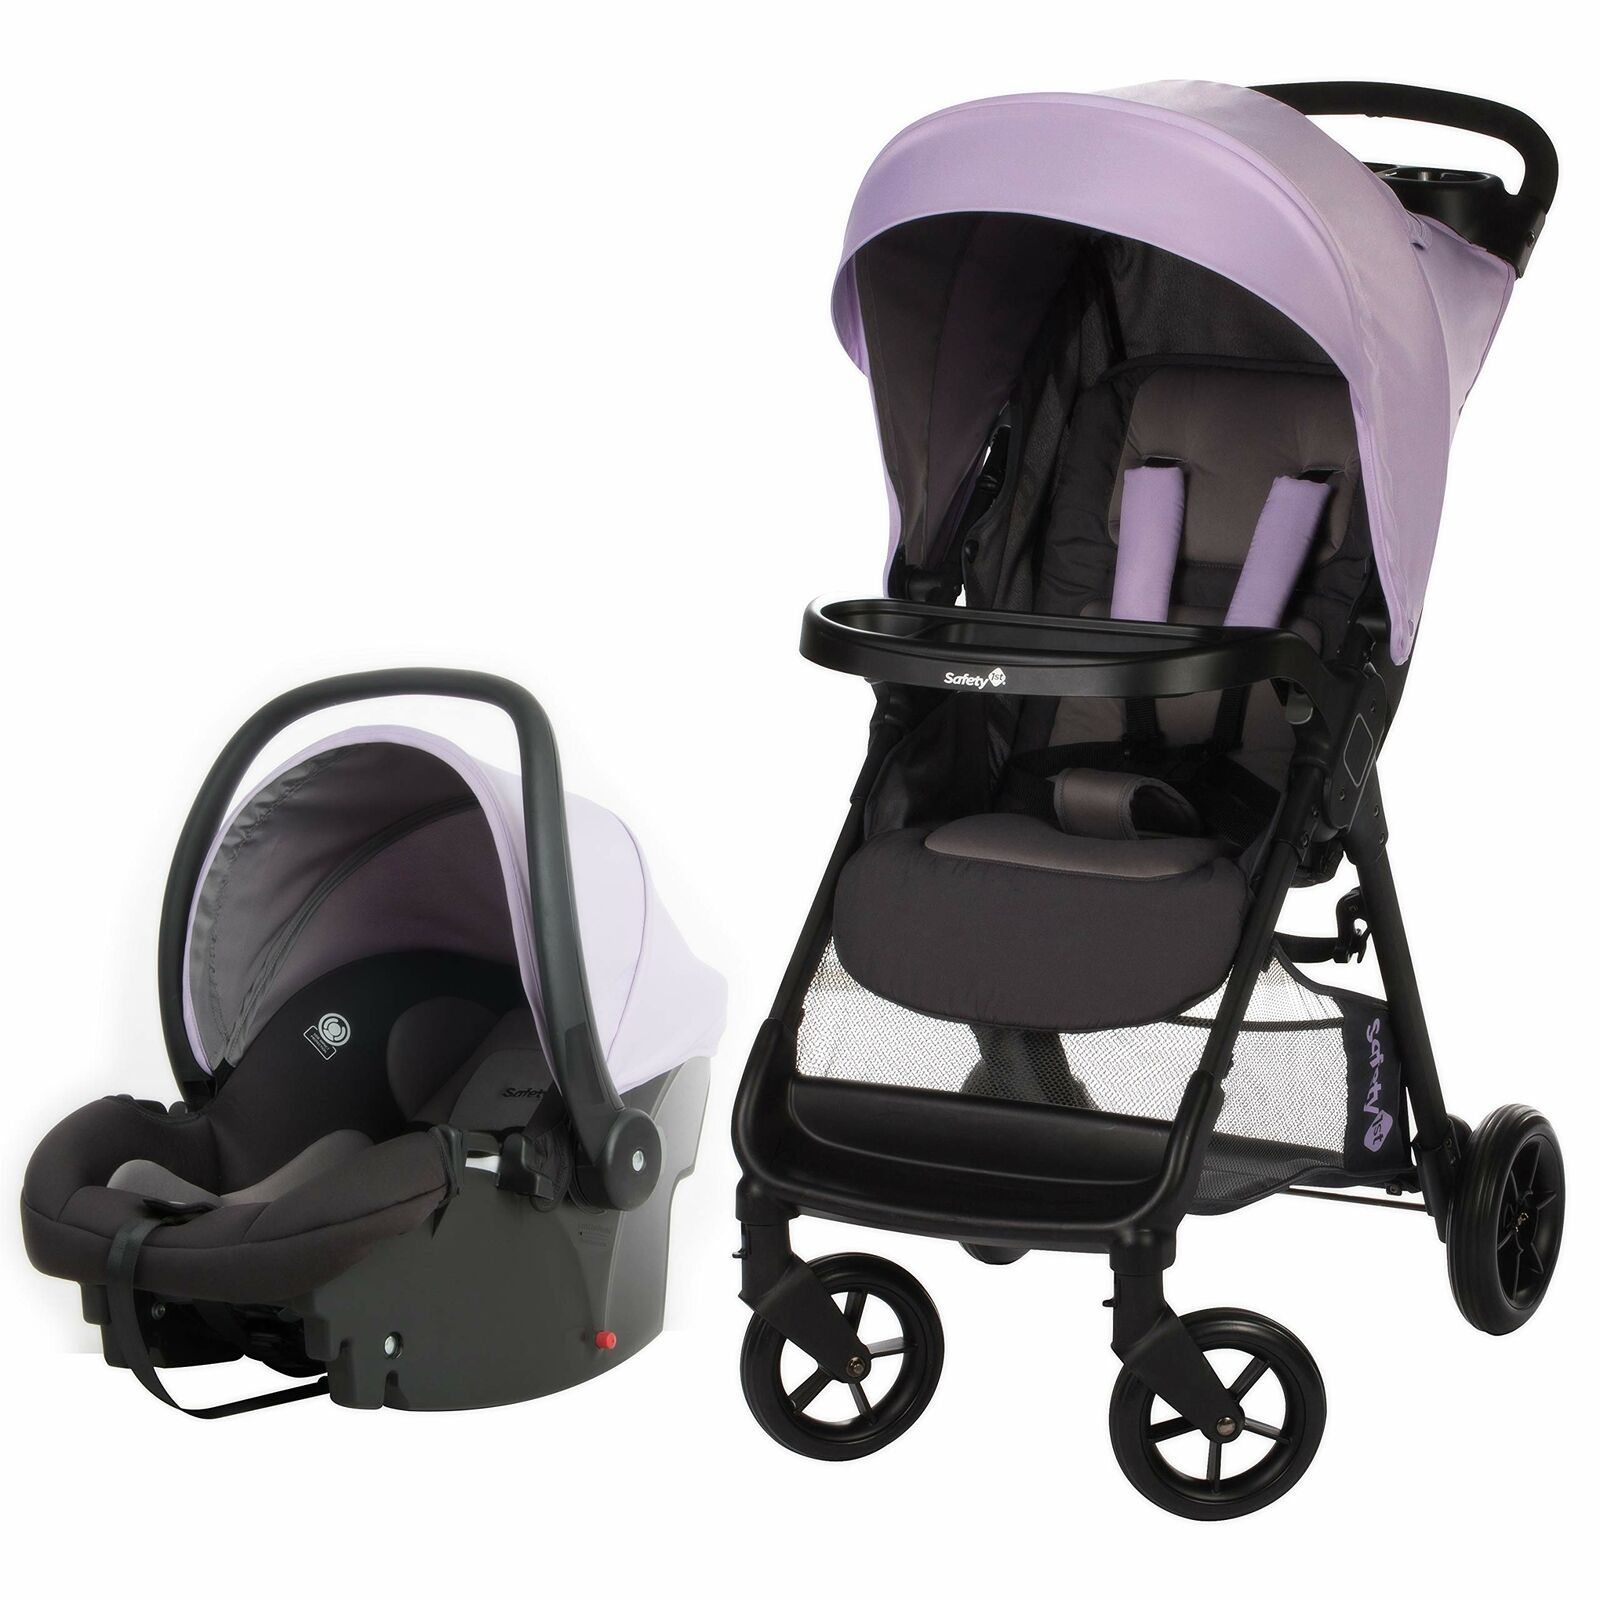 Safety 1st Smooth Ride Travel System with onBoard 35